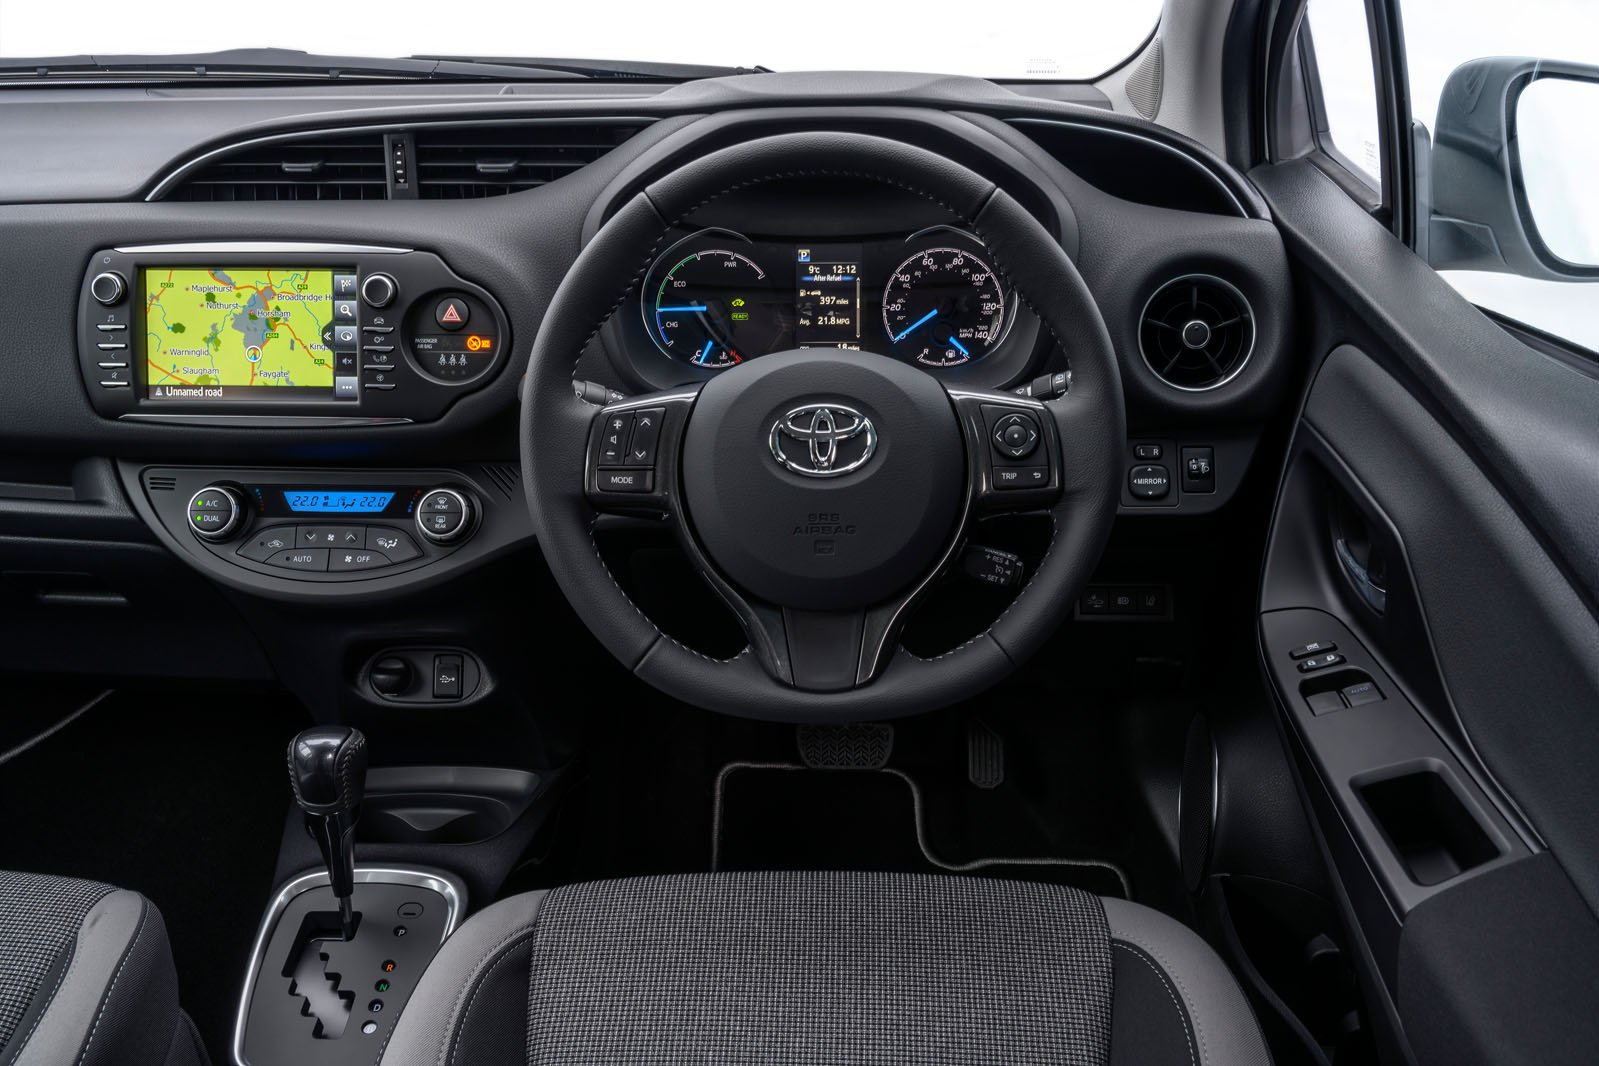 Toyota Yaris 1.5 Hybrid Icon CVT - interior